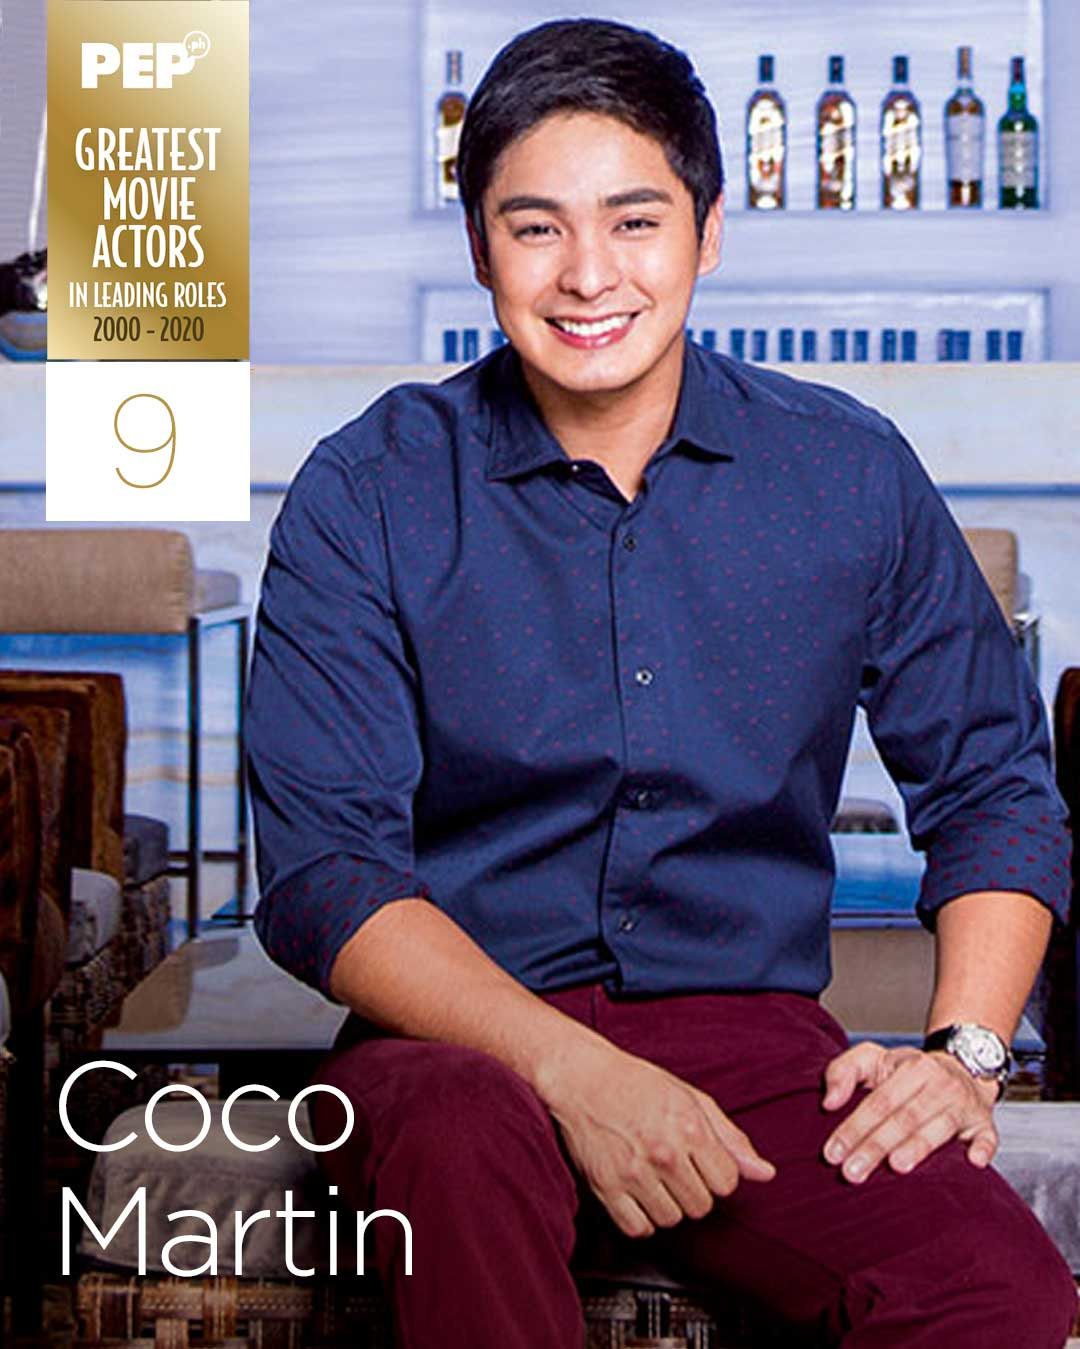 Coco Martin, 15 Greatest Actors in Leading Roles